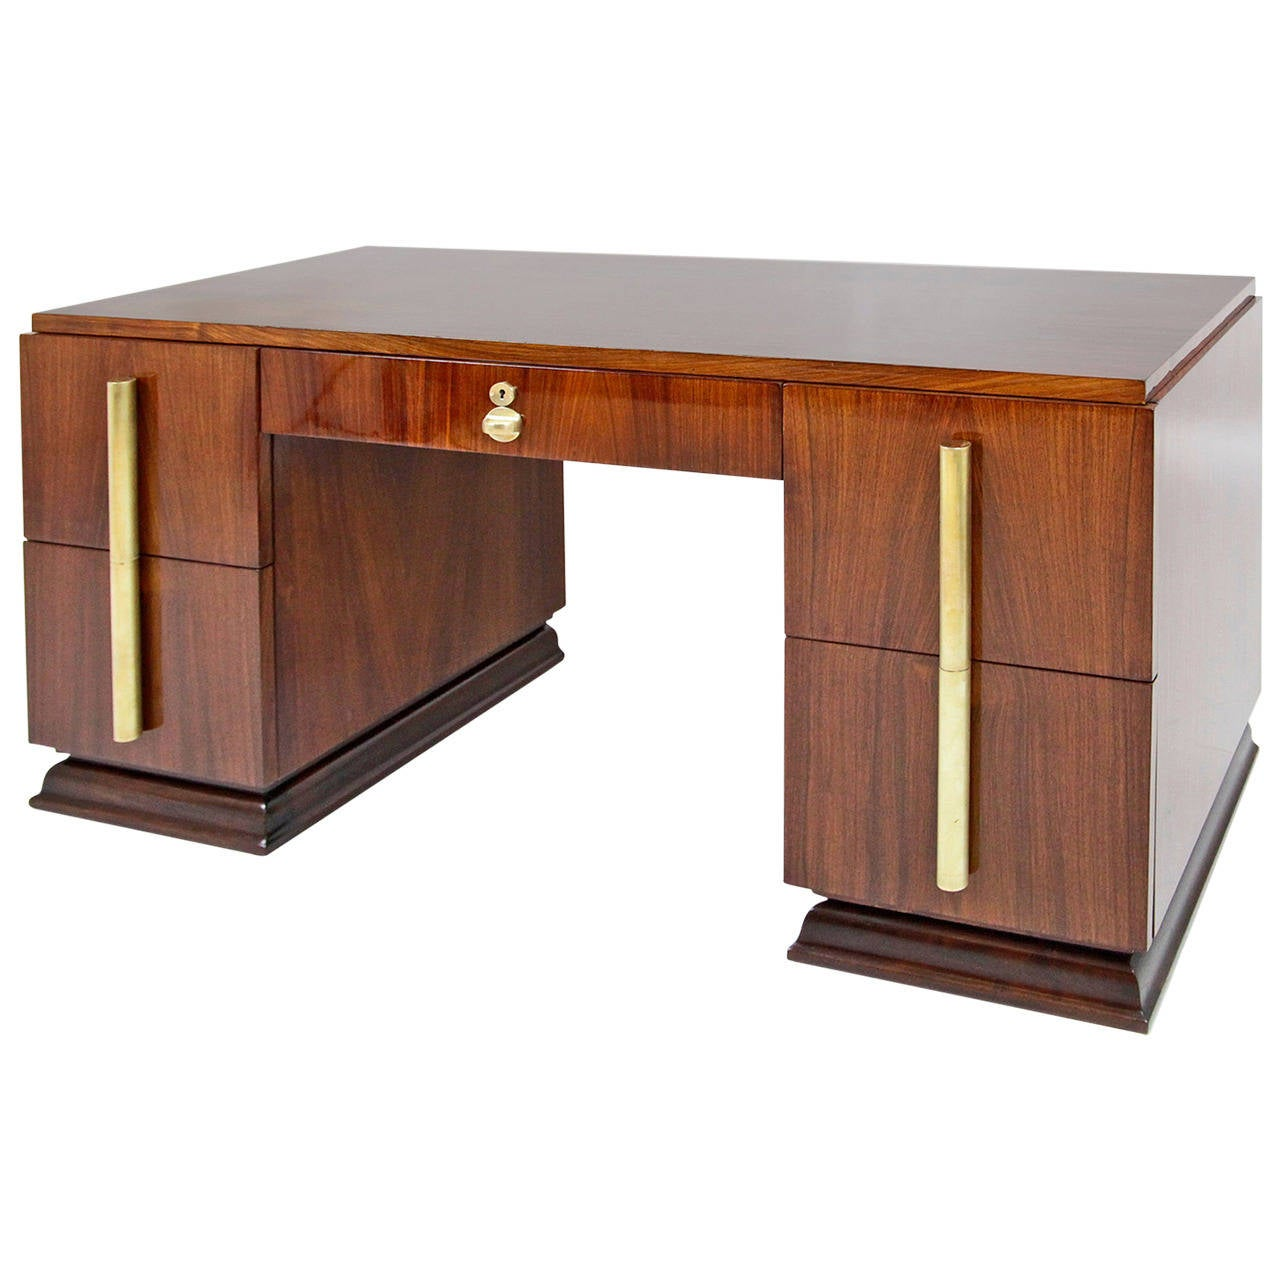 high quality french art deco desk circa 1920s at 1stdibs rh 1stdibs com art deco desk art deco desk